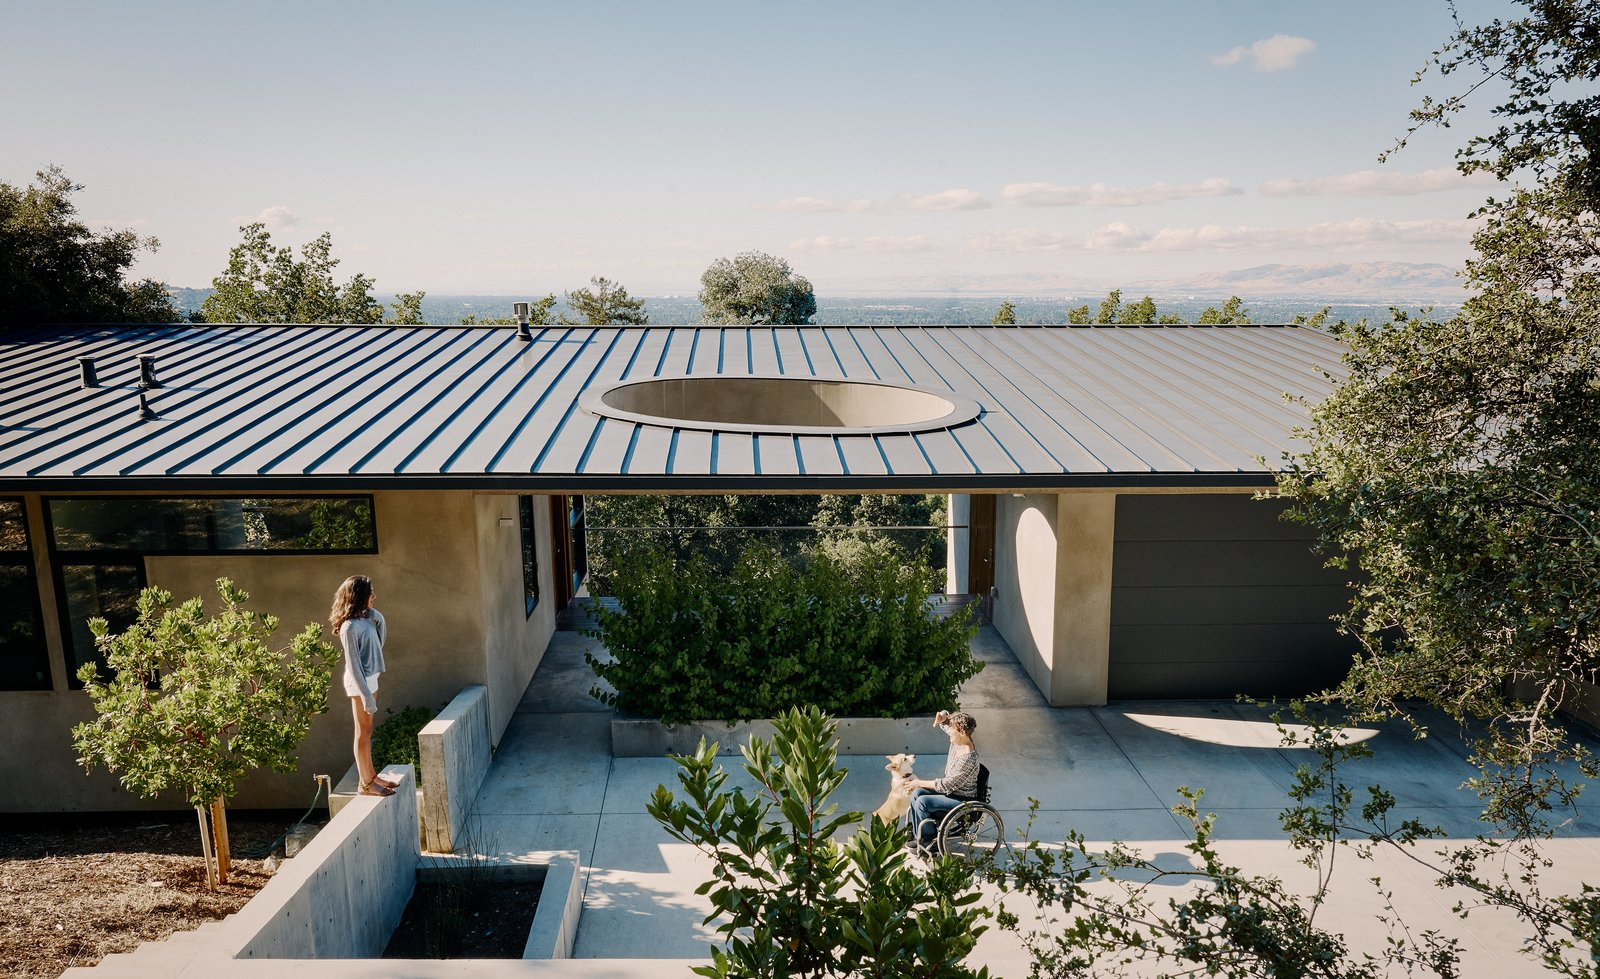 Exterior, House Building Type, Stucco Siding Material, and Metal Roof Material Resident Elizabeth Twaddell enjoys the weather with her daughter Uma outside the guesthouse Neal Schwartz designed for her mother-in-law, Surendra, who frequently visits for extended stays. A concrete driveway forks off from the main house to lead to a covered breezeway, sited between the new 775-square-foot structure and a two-car garage.  Best Photos from A Family Guesthouse Made for Accessibility, Aging in Place—and That View